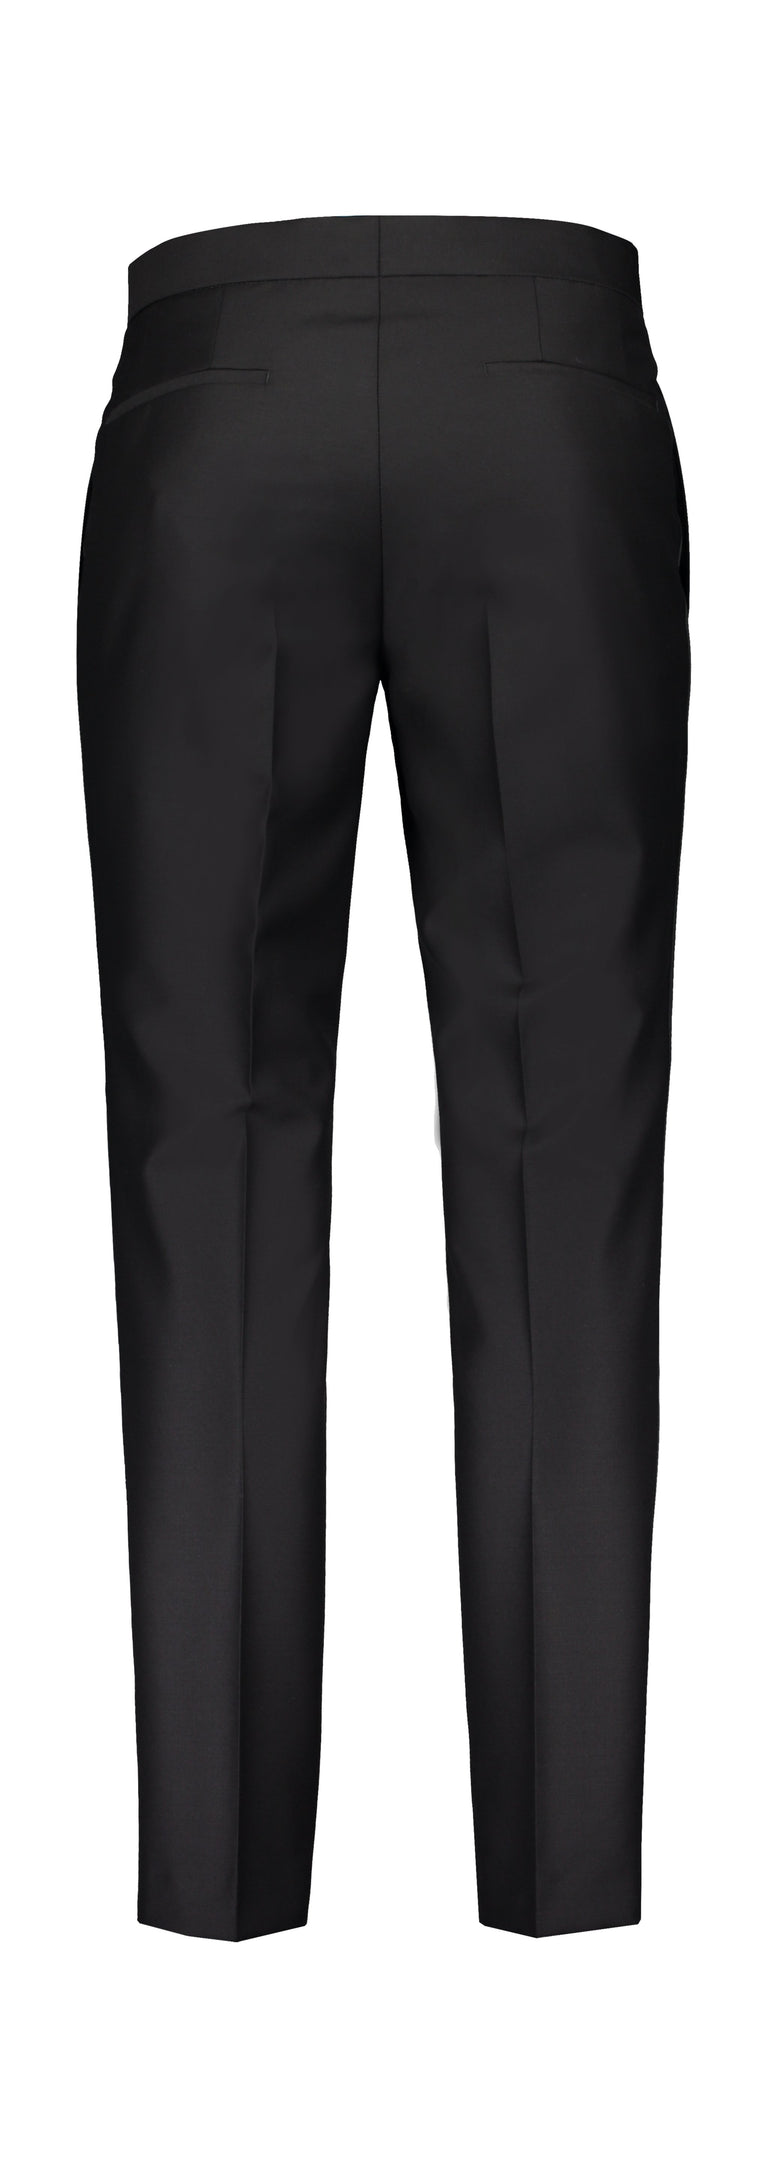 Slim fit trousers for white tie and tuxedo (4353133051966)